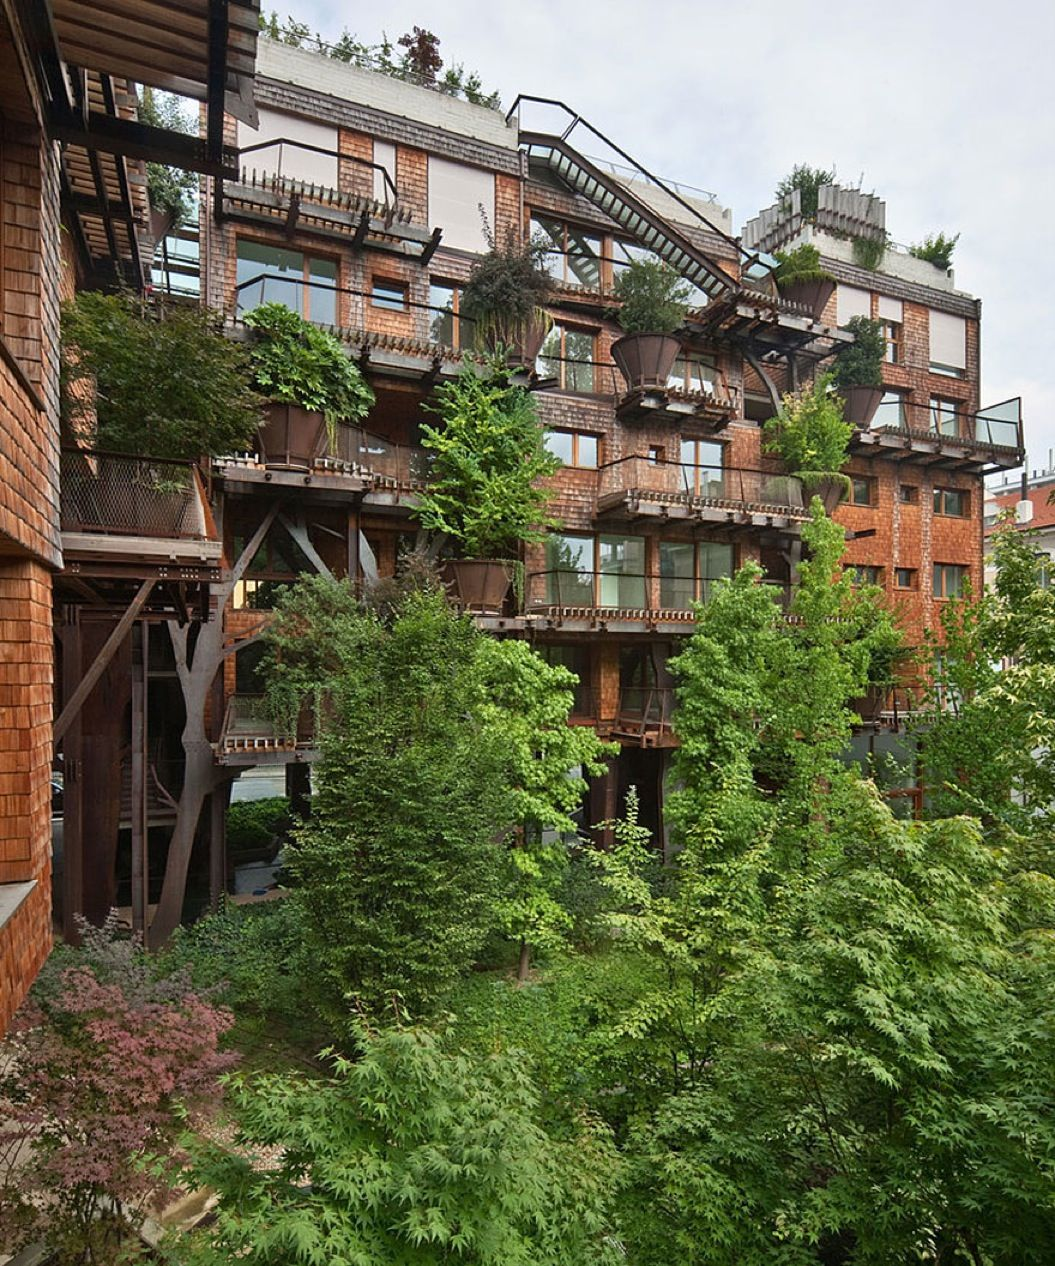 85singo_urban-treehouse-green-architecture-25-verde-luciano-pia-turin-italy-12